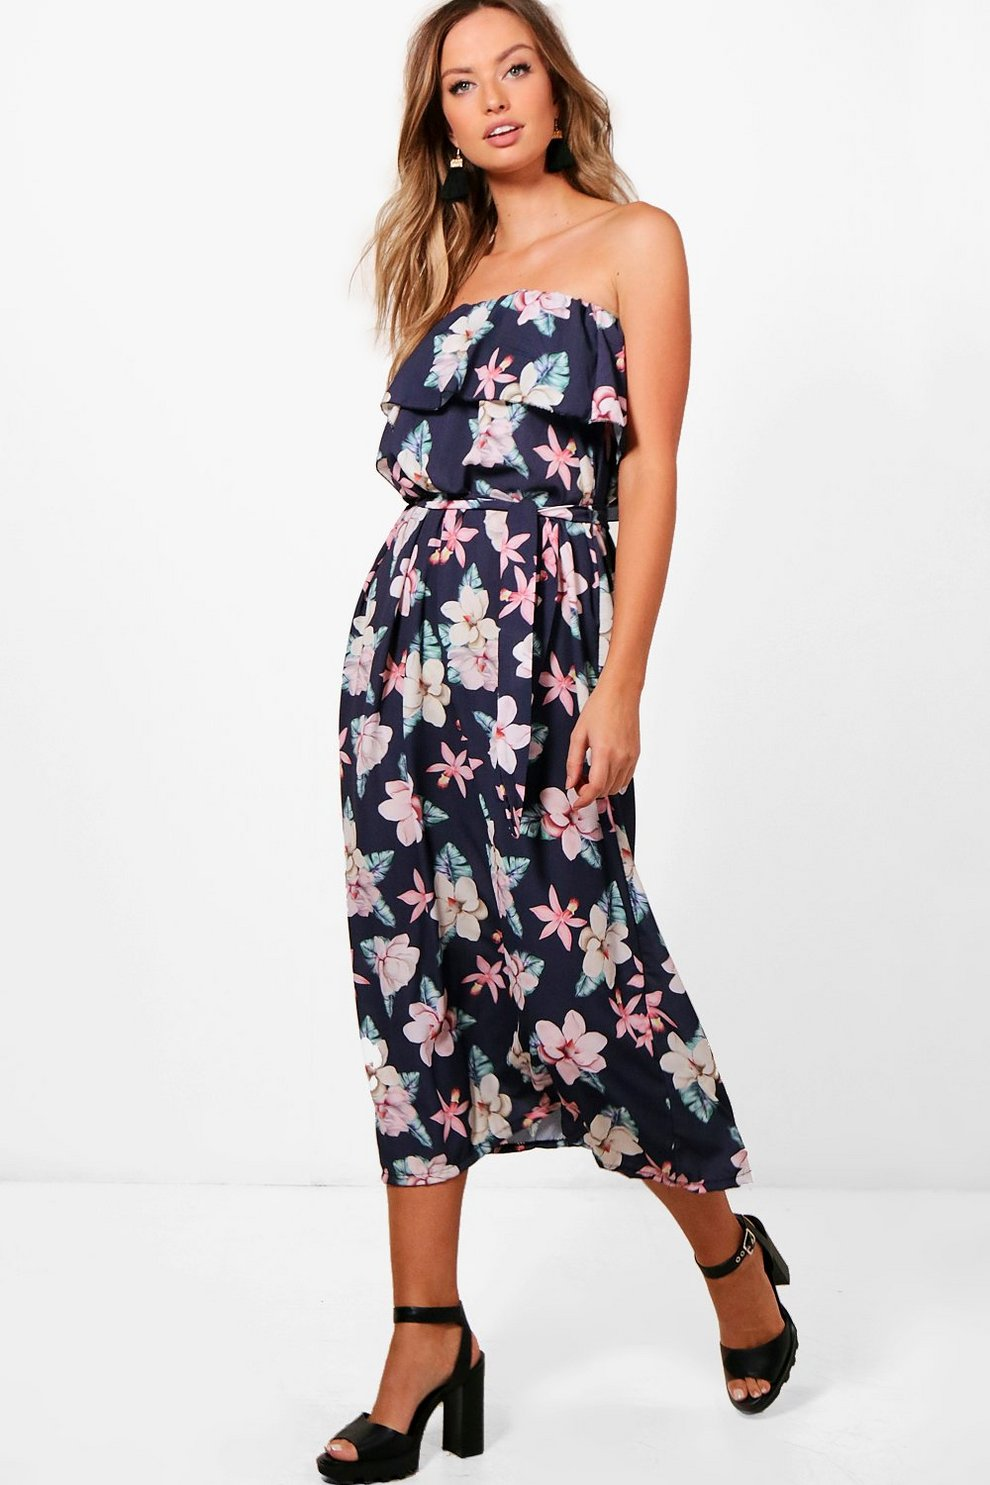 Boohoo Dark Floral Woven Maxi Dress Looking For Lowest Price Online Finishline Buy Cheap Best Place The Cheapest Cheap Price rwJNEO3